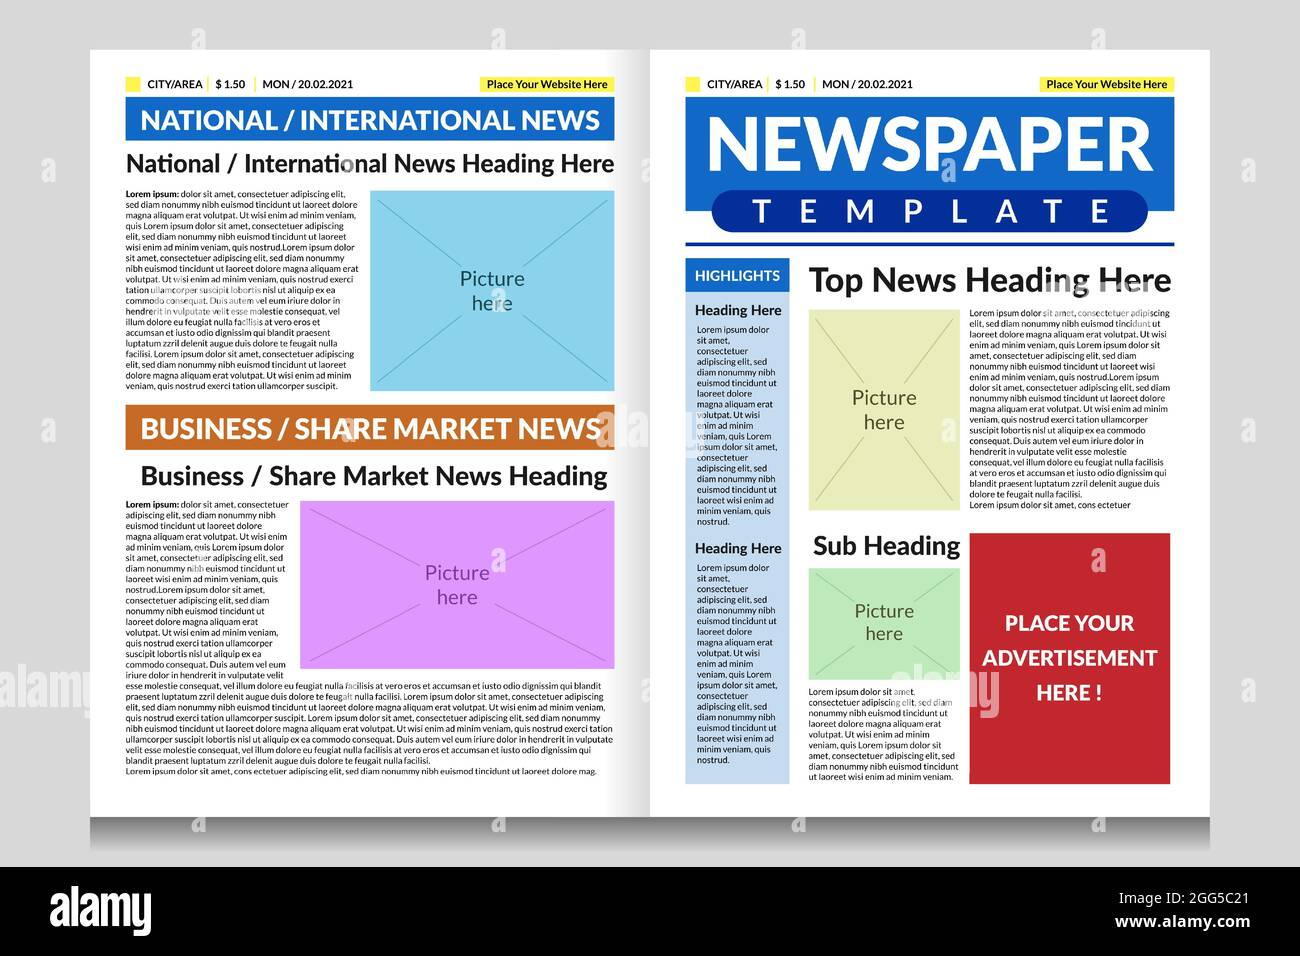 Never overcrowd the front page with a lot of details as it does not look good. Newspaper Front Page Design Template Newspaper Sample Design With Heading Body Text And Pictures Placeholder Stock Vector Image Art Alamy